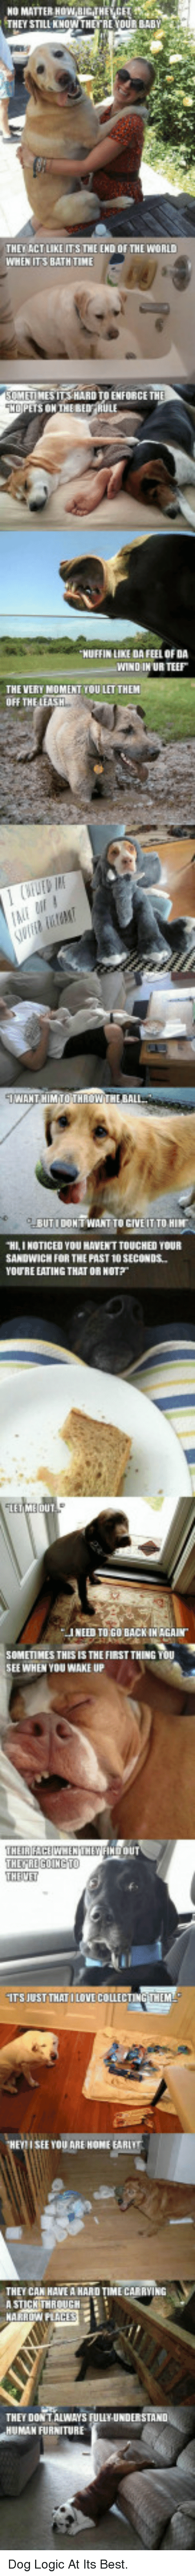 Its The End Of The World: NO MATTER  THEY STILL KNOW THEYRE YOUR BABY  THEPACTLIKE ITS THE END OF THE WORLD  WHEN ITS BATH TIME  HUFFIN LIKE DA FEEL OF DA  WIND IN UR TEEF  THE VERY MOMENT YOU LET THEM  OFF  BUTIDONIT WANT TO GIVE IT TO HI  HI I NOTICED YOU HAVEN'T TOUCHED YOUR  SANDWICH FOR THE PAST 1O SECONDS  YOU'RE EATING THAT OR NOT 。  I NEED TO GO BACK IN AGAIN  SOMETIMES THES IS THE FIRST THINE  SEE WHEN YOU WAKE UP  THECREGOINCTO  THEMET  ITS JUST THAT ILOVE COLLECTING THE  I SEE YOU ARE HONE EARIUT  THEY CAN HAVE A HARD TIME CARRYING  THEY DON T ALWAYS FULIY-UNDERSTAND  MAN FURNITURE <p>Dog Logic At Its Best.</p>